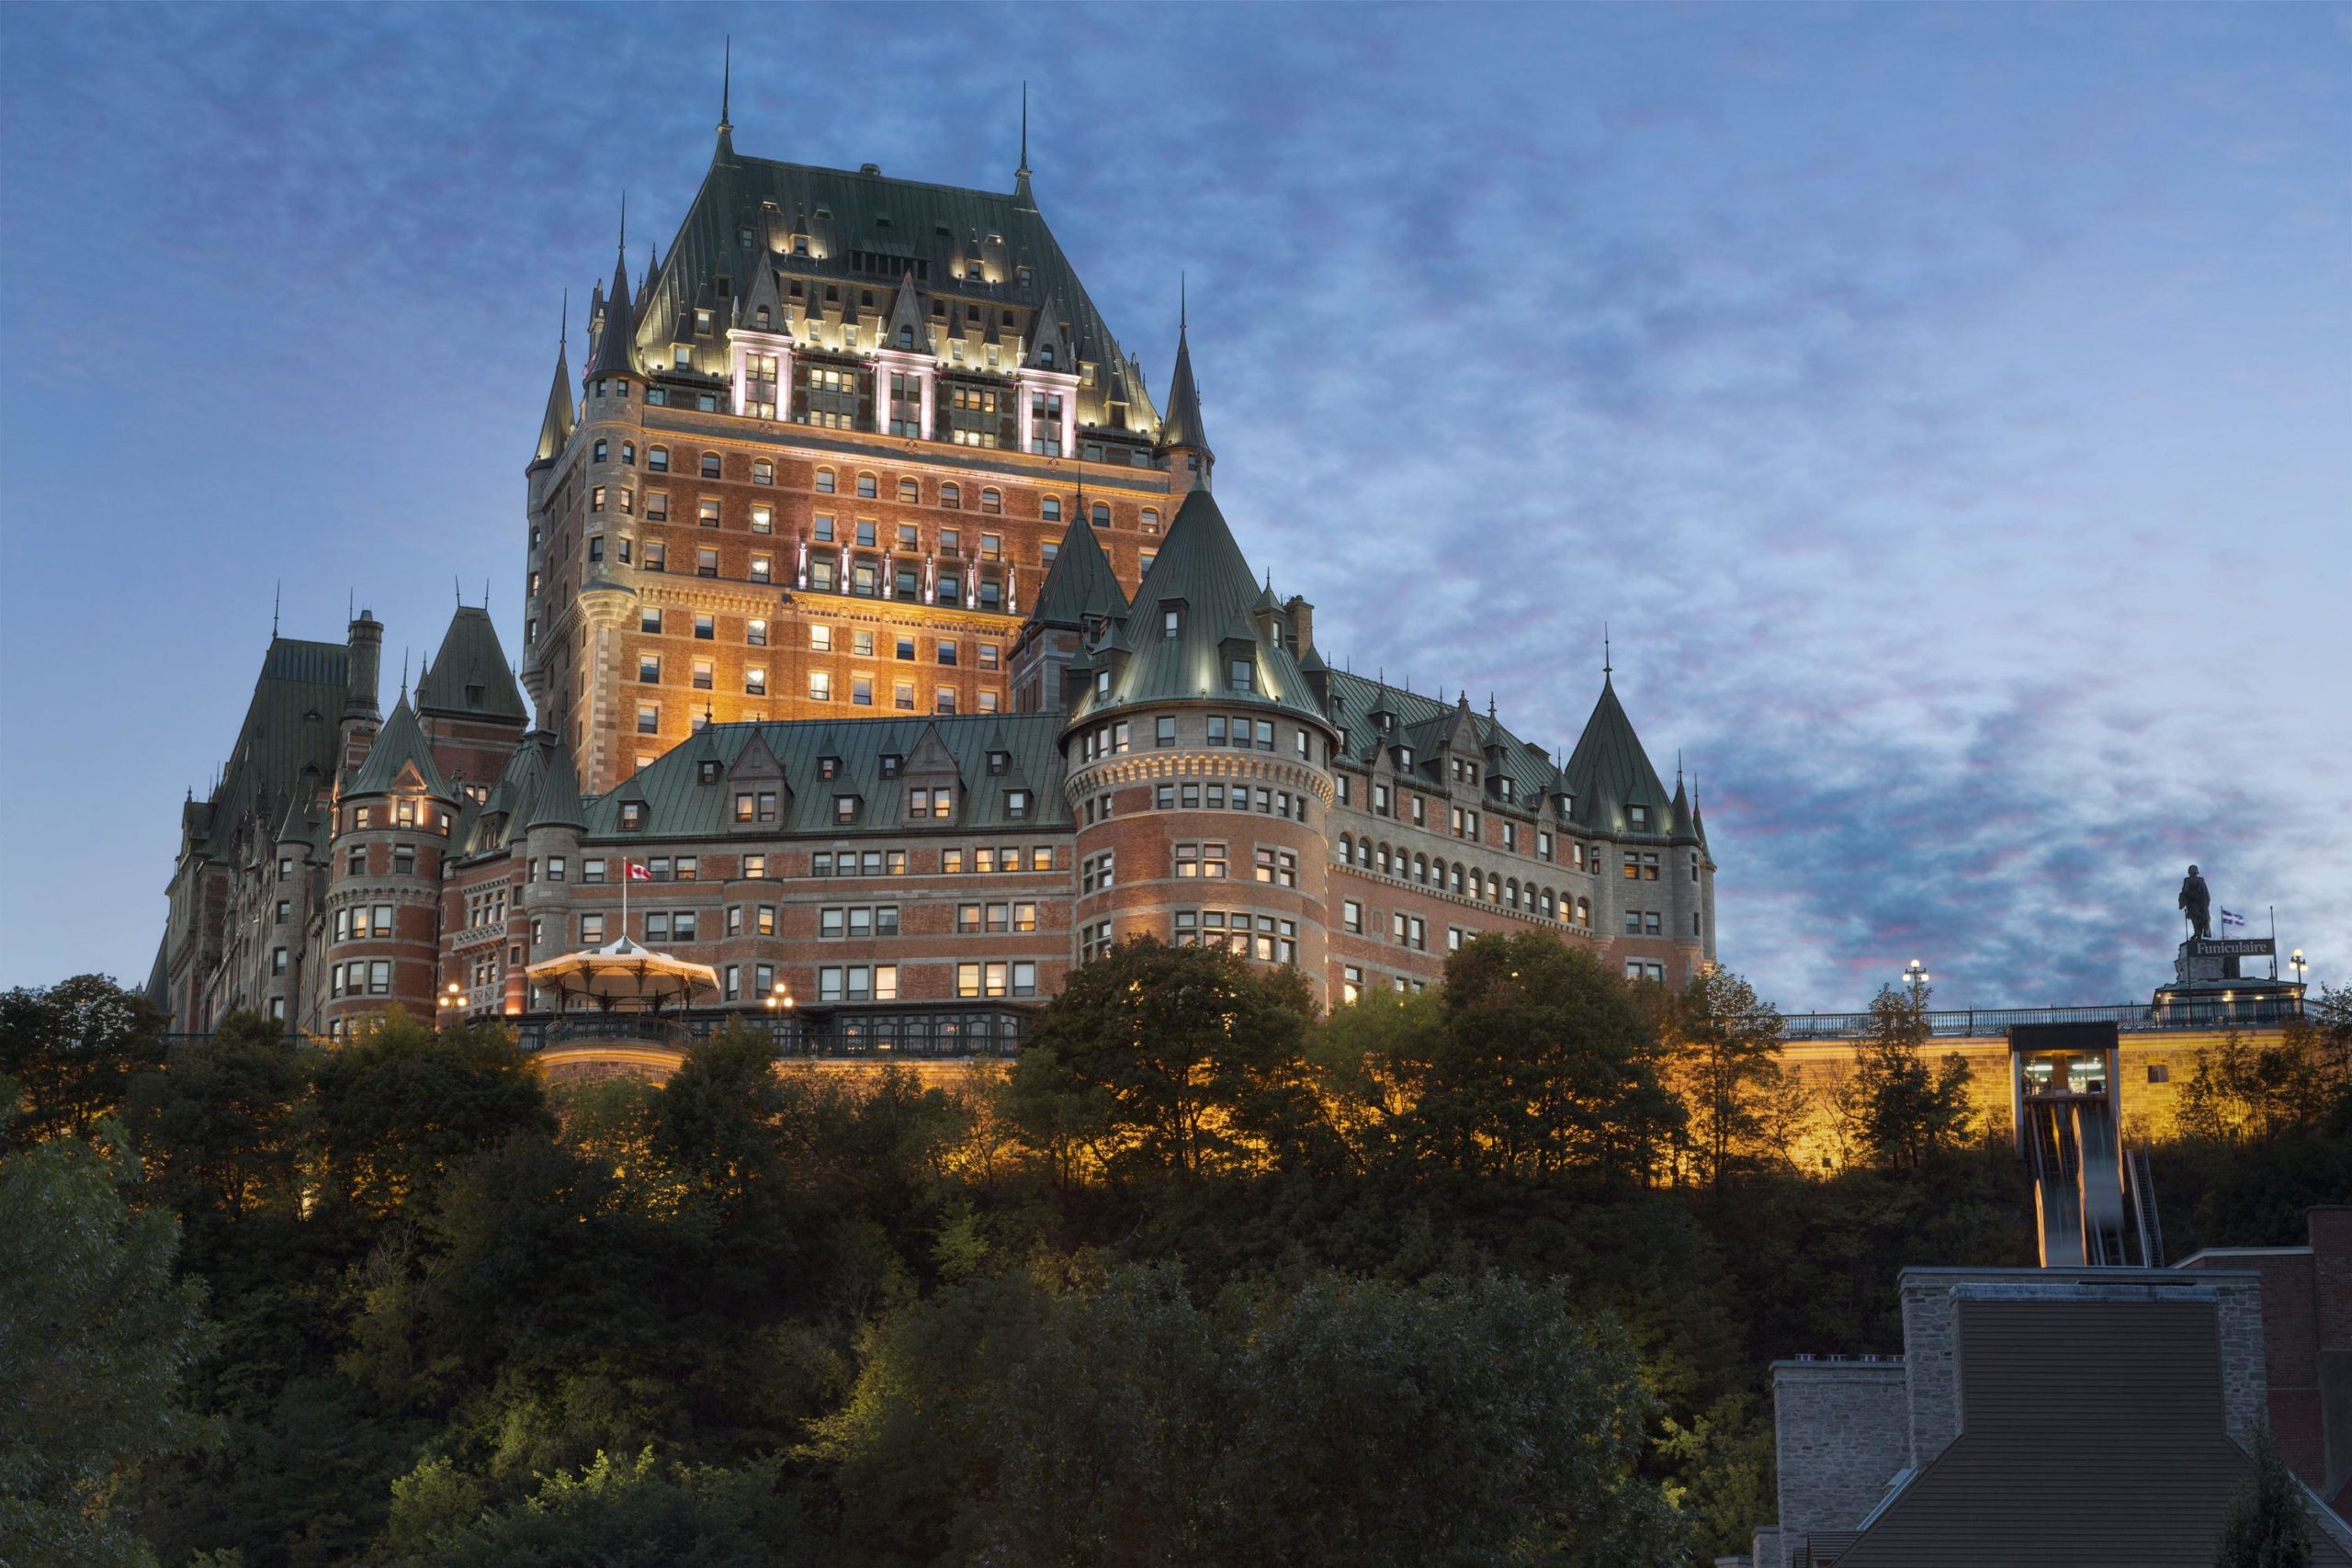 Dramatic exterior shot of Chateau Frontenac in Quebec City at night